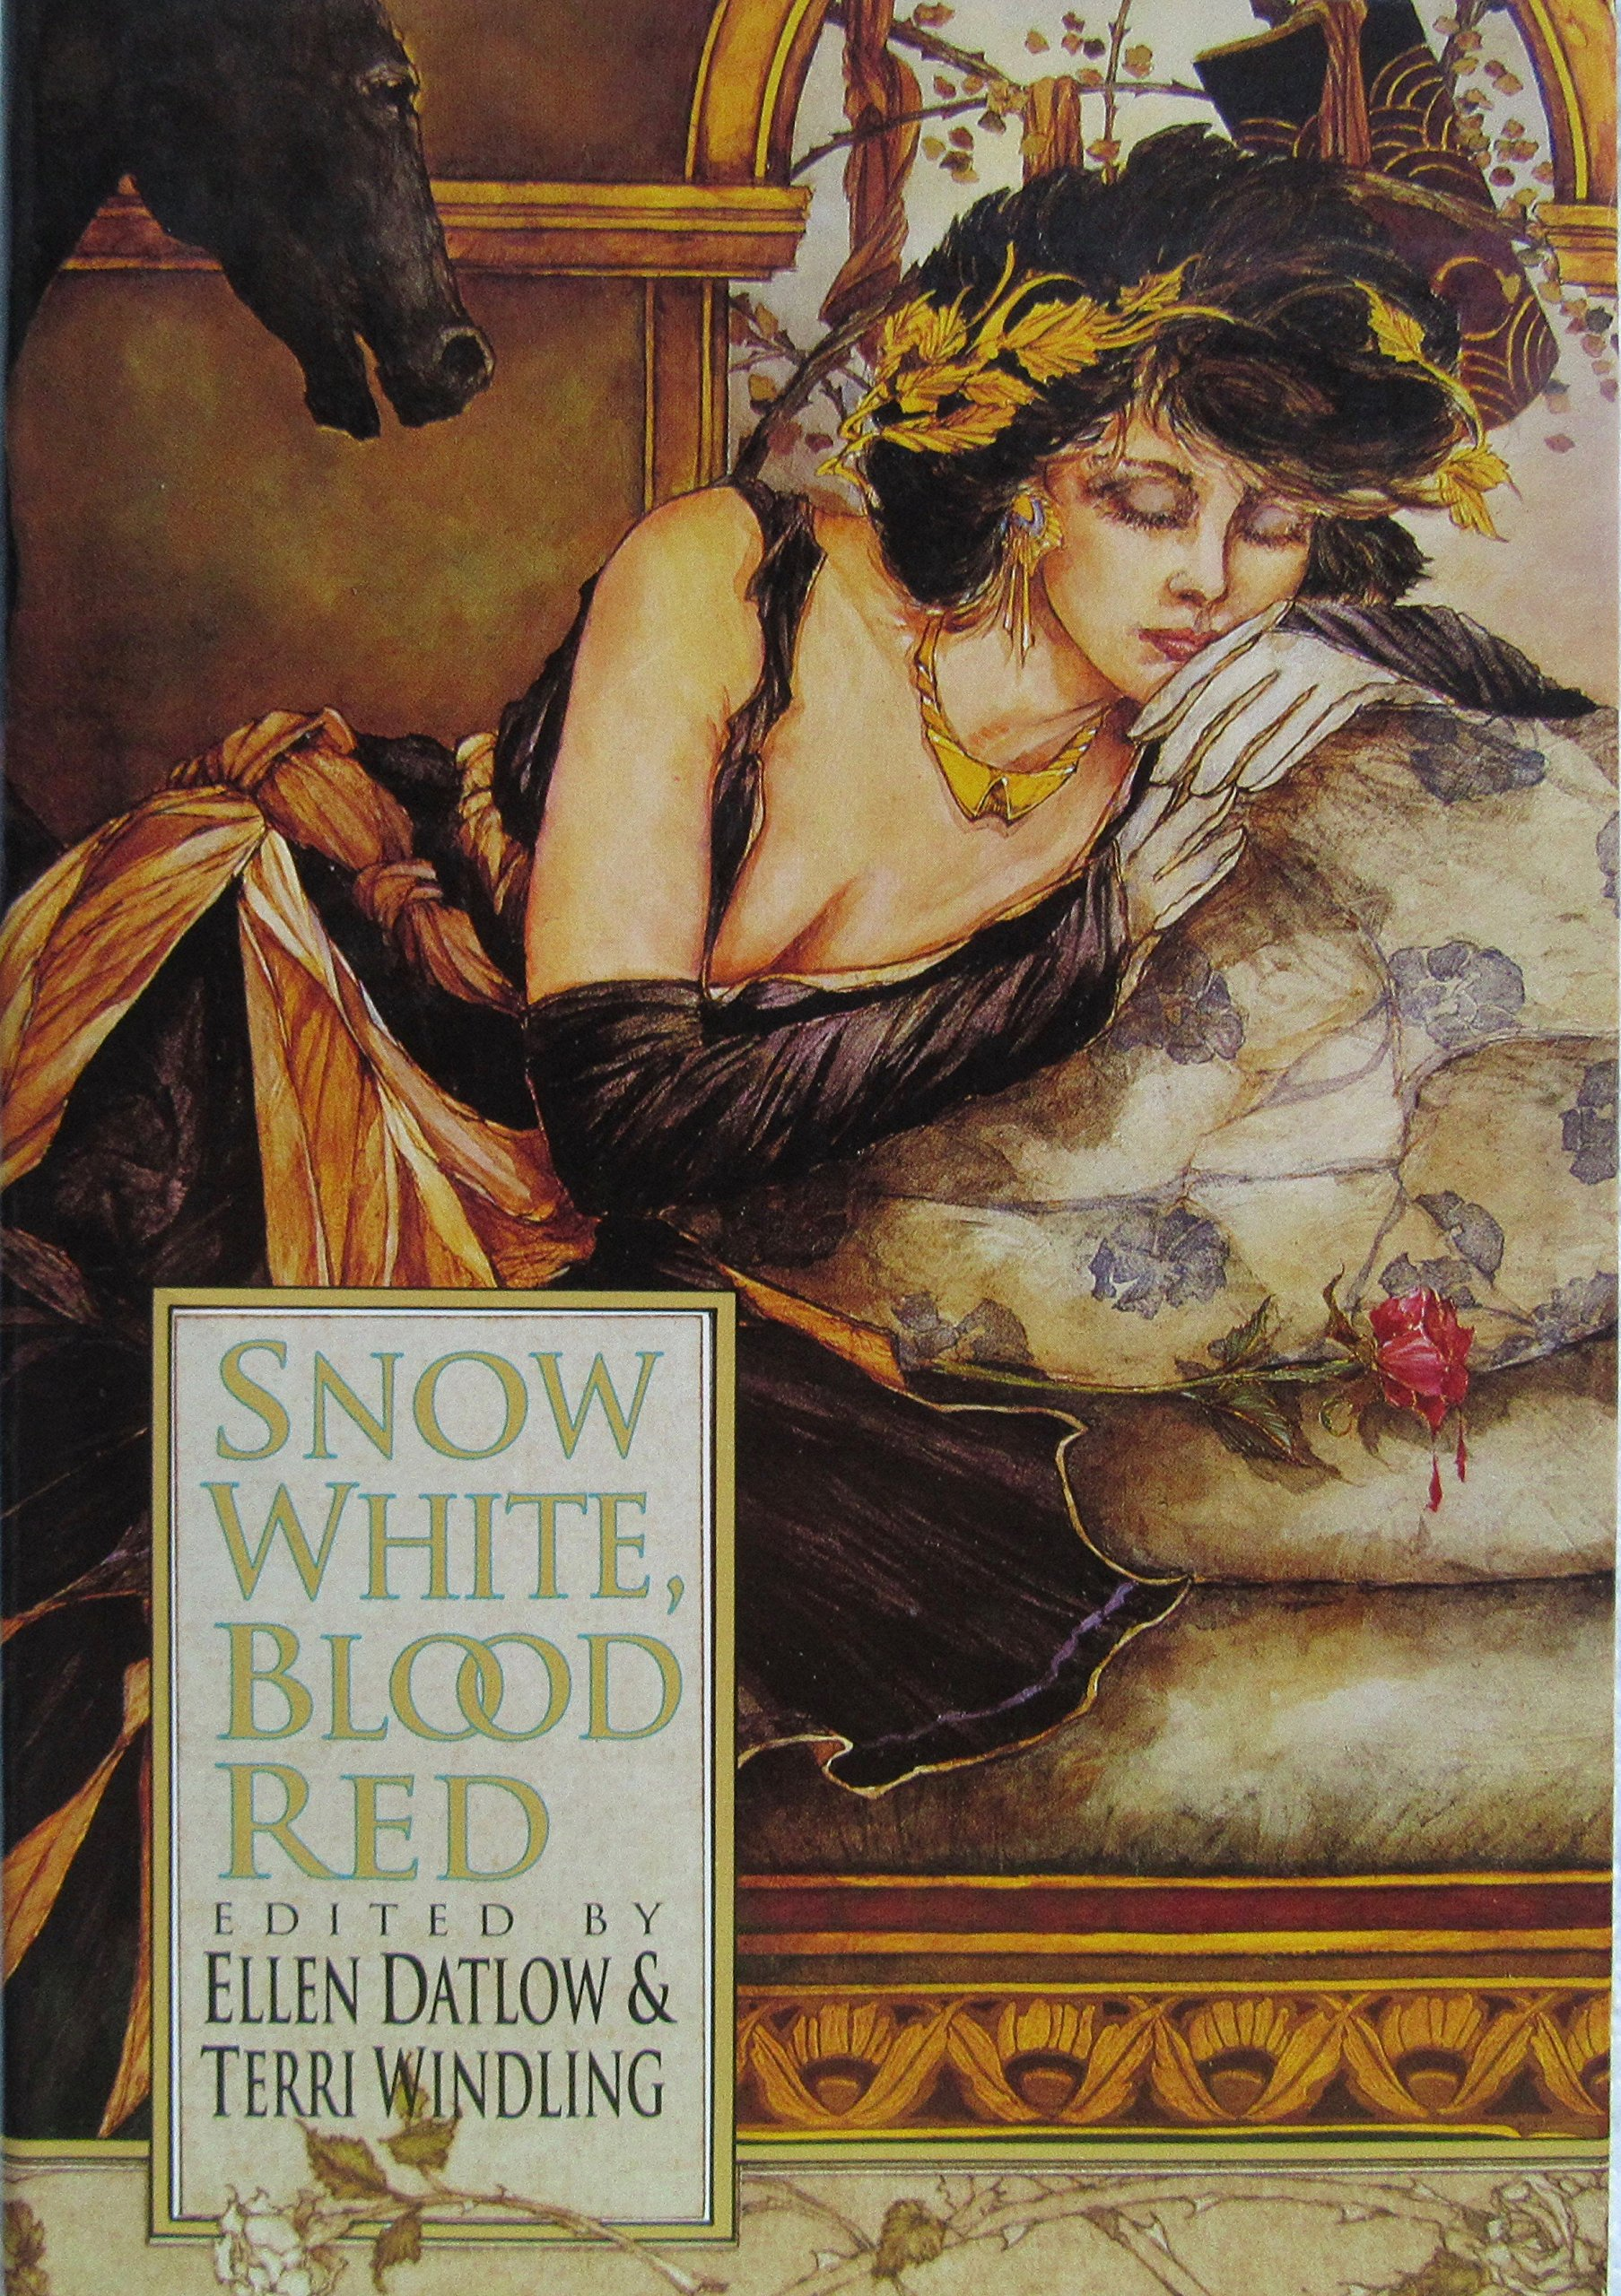 Snow White, Blood Red cover